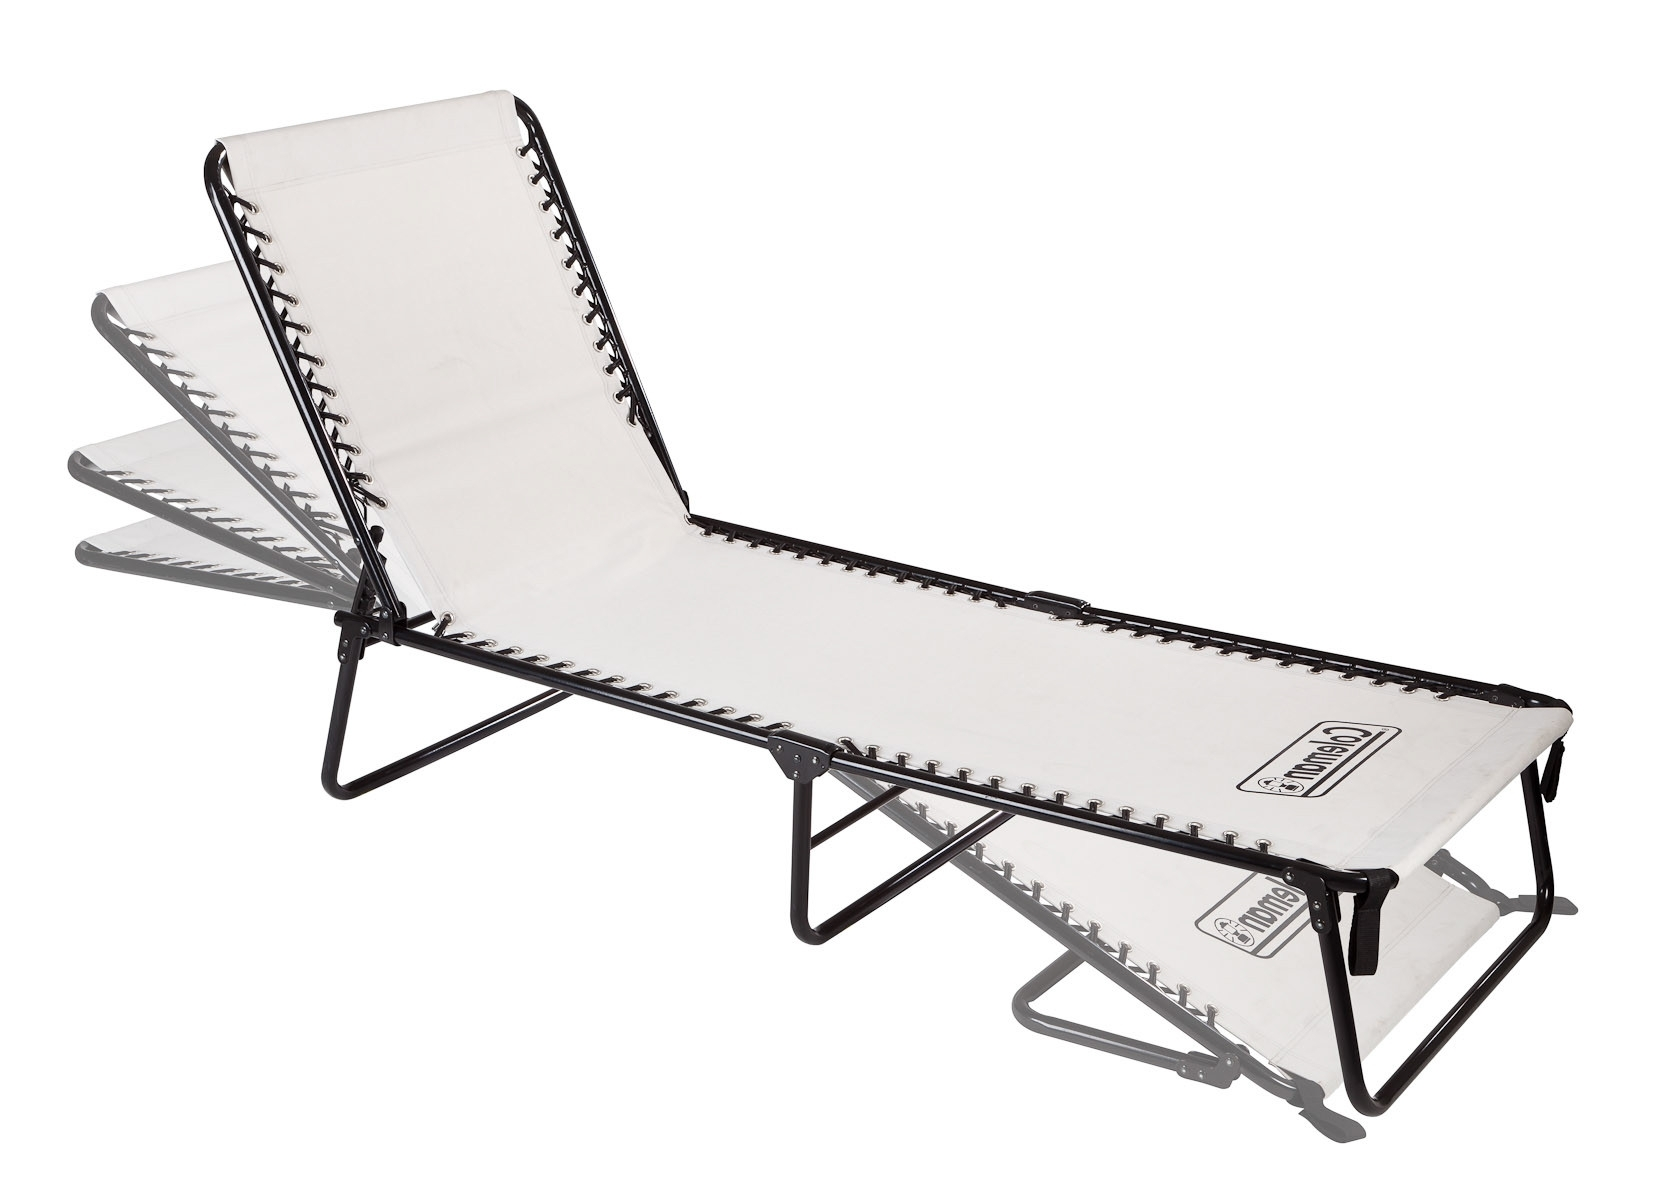 Most Popular Heavy Duty Outdoor Chaise Lounge Chairs In Lounge Chairs : Best Folding Camp Chair Black Outdoor Chaise (View 8 of 15)